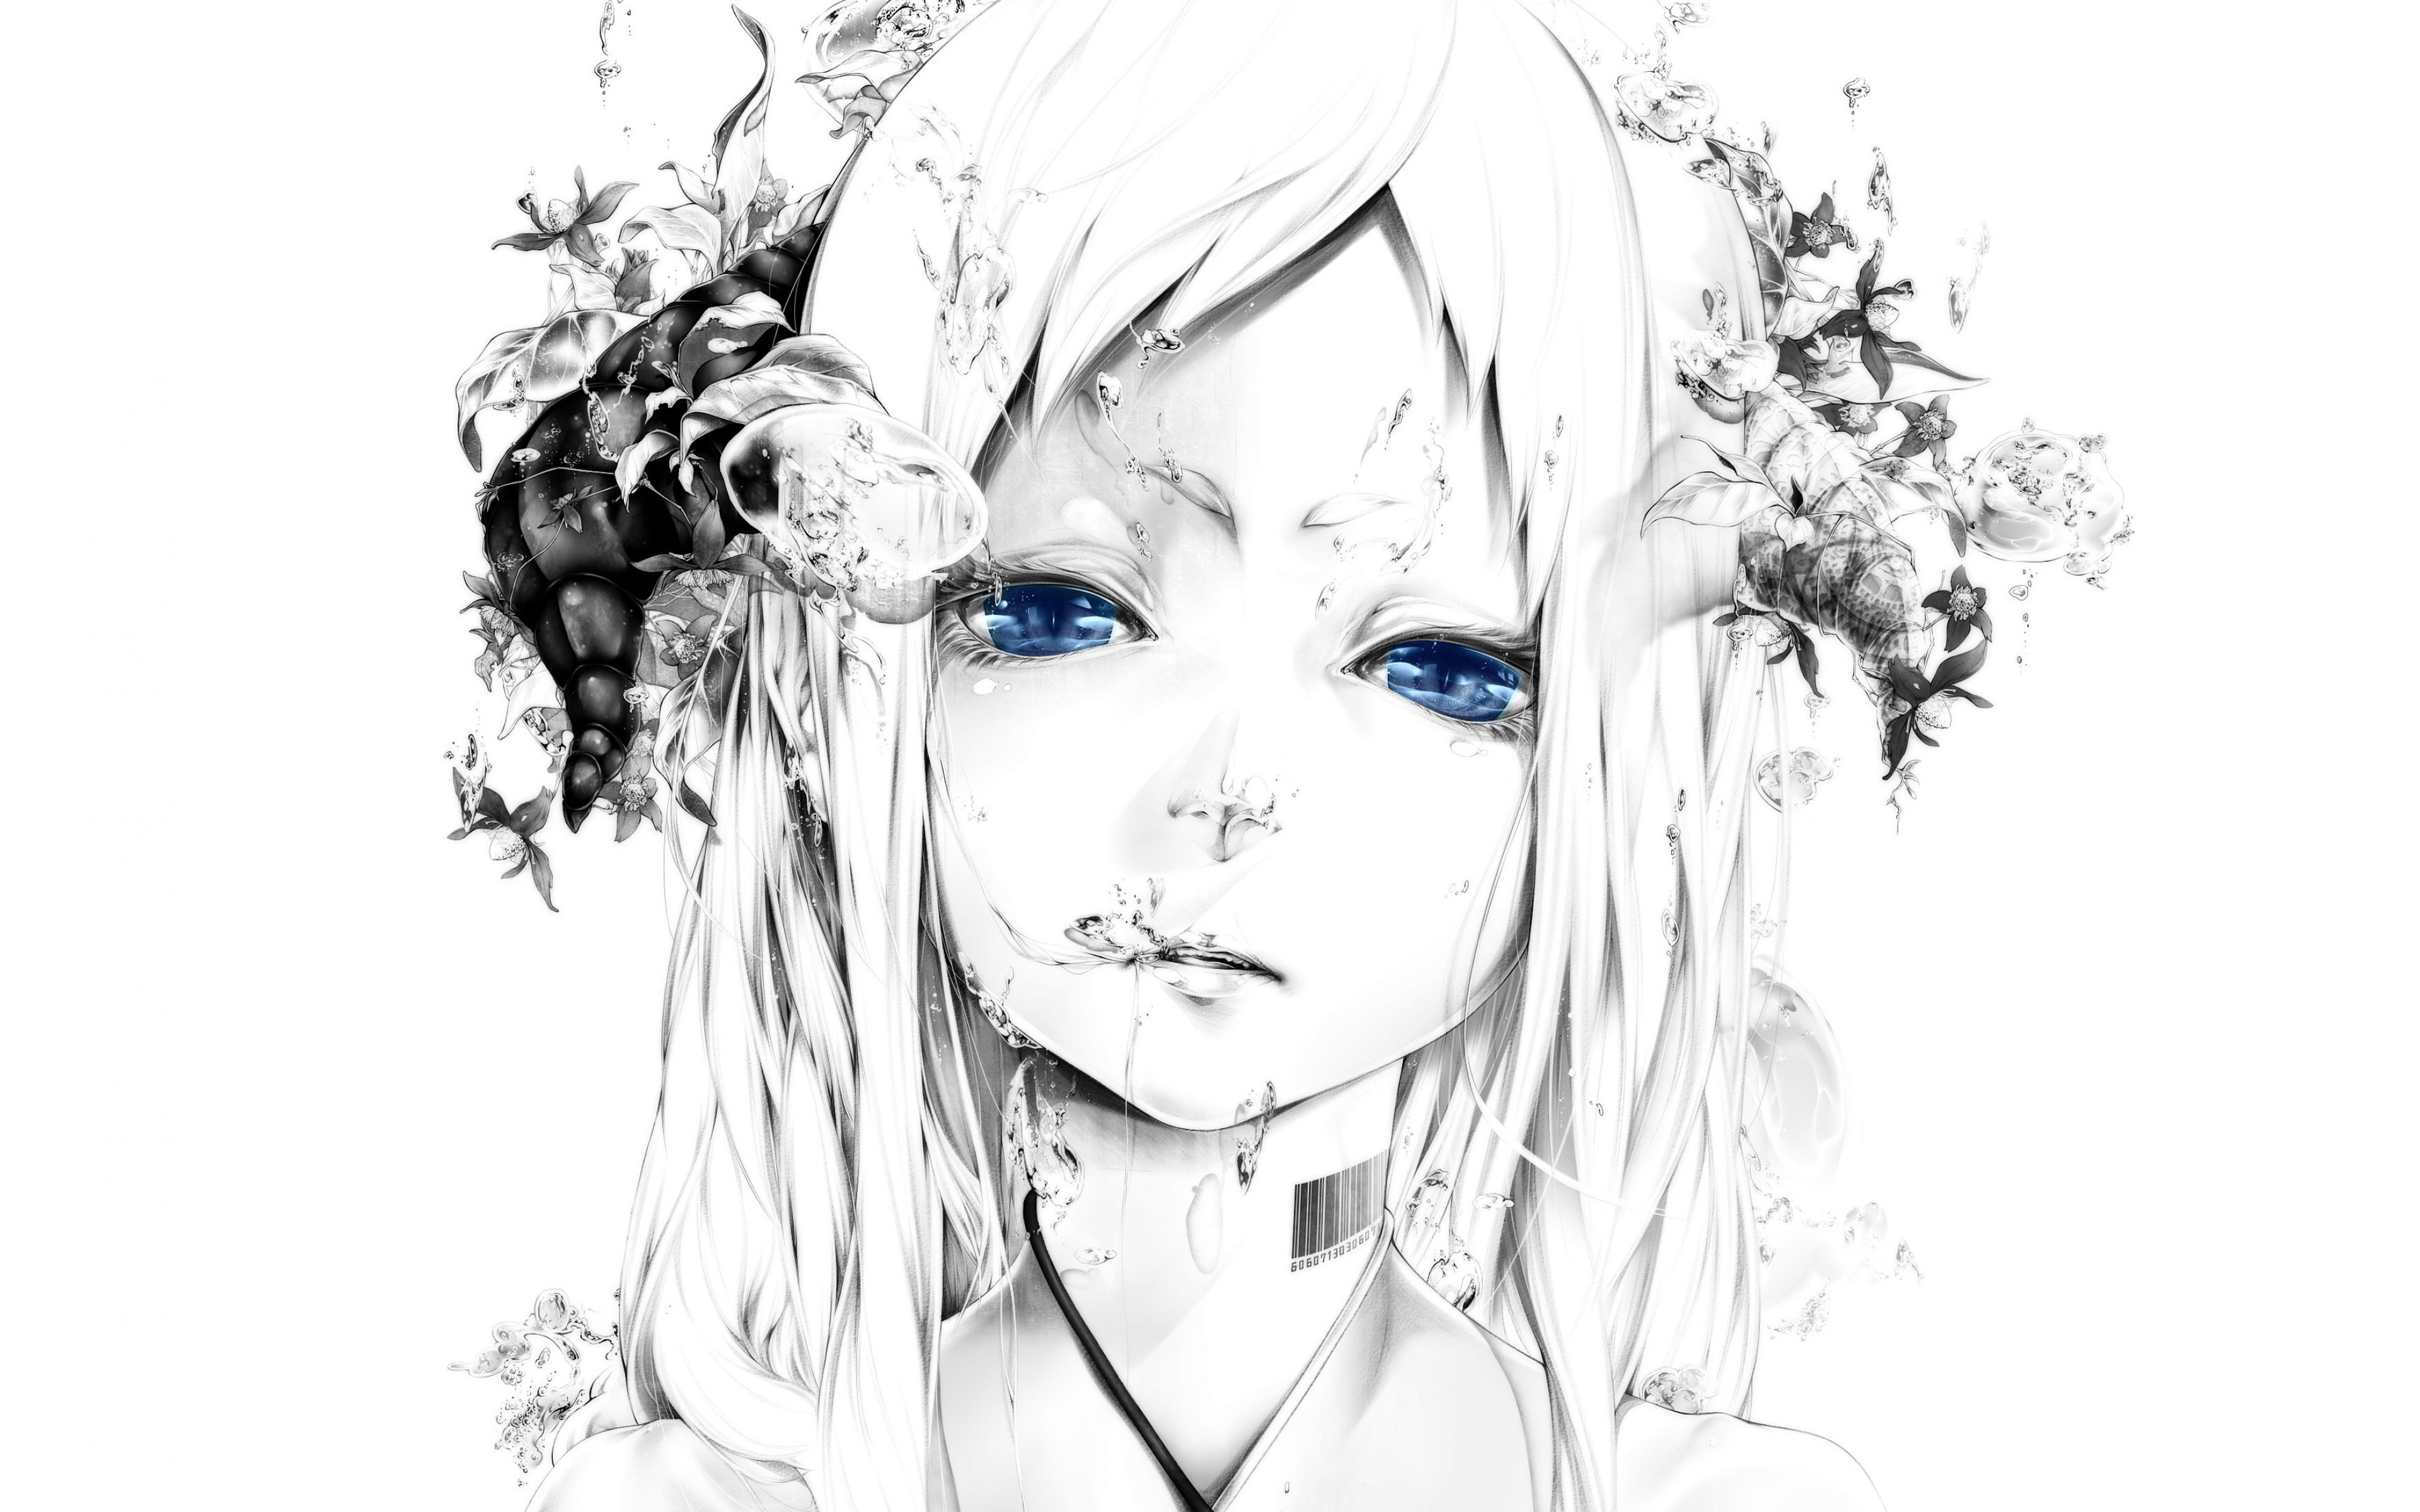 Anime Art Black And White Wallpapers Top Free Anime Art Black And White Backgrounds Wallpaperaccess,Best Exterior House Paint Colors In India